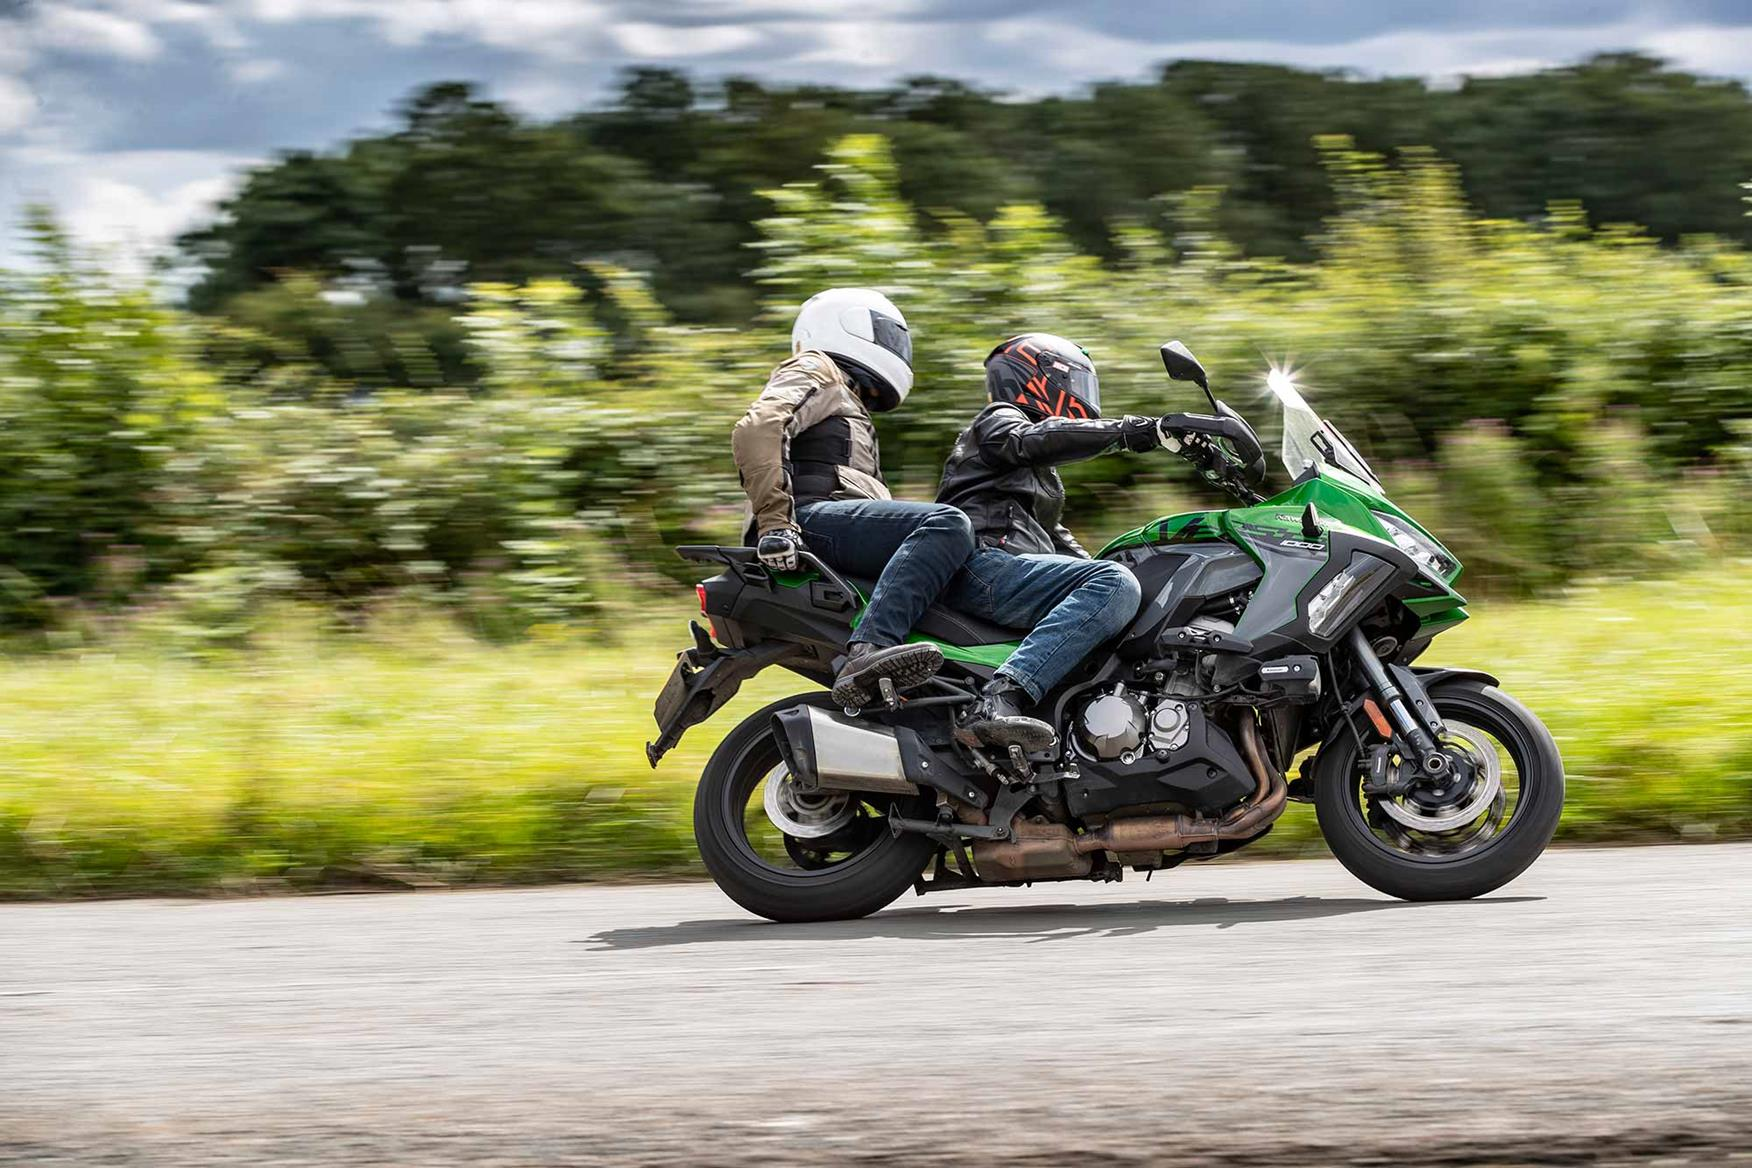 Carrying a pillion on the Kawasaki Versys 1000 SE